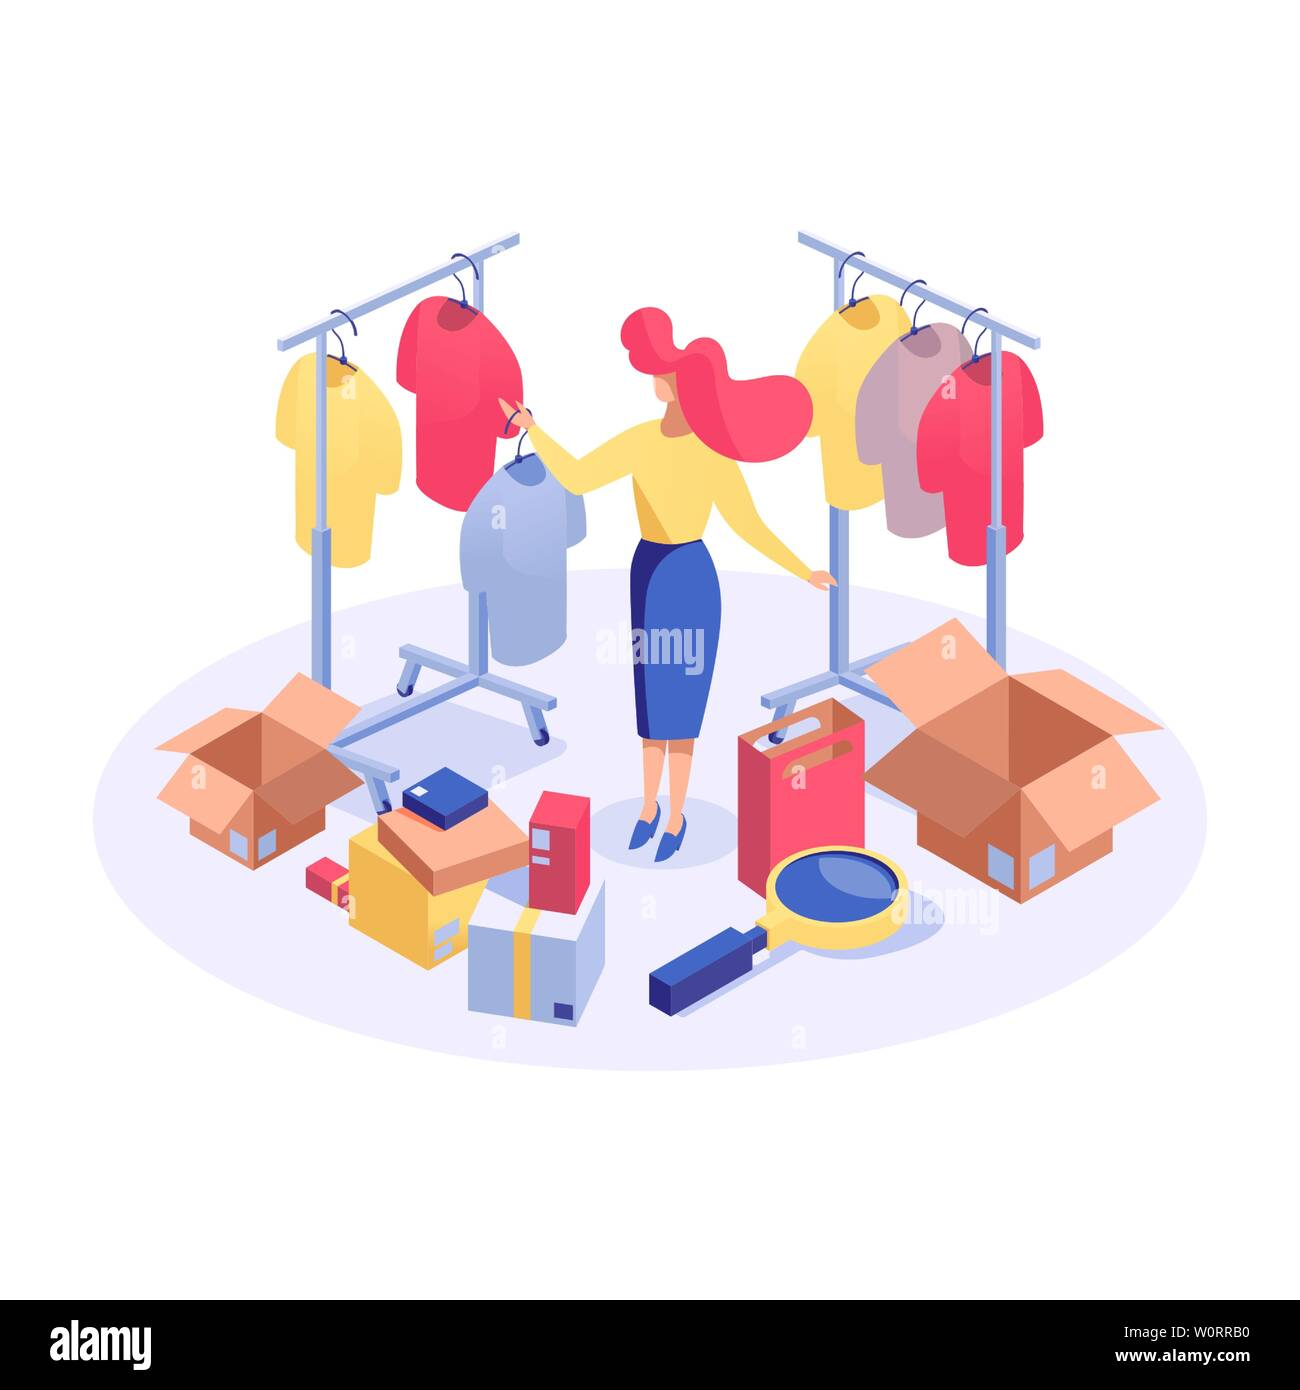 Woman in clothes boutique isometric illustration. Female buyer searching best price, choosing products, marketer analyzing goods 3d vector character. Consumerism and shopping isolated clipart - Stock Image